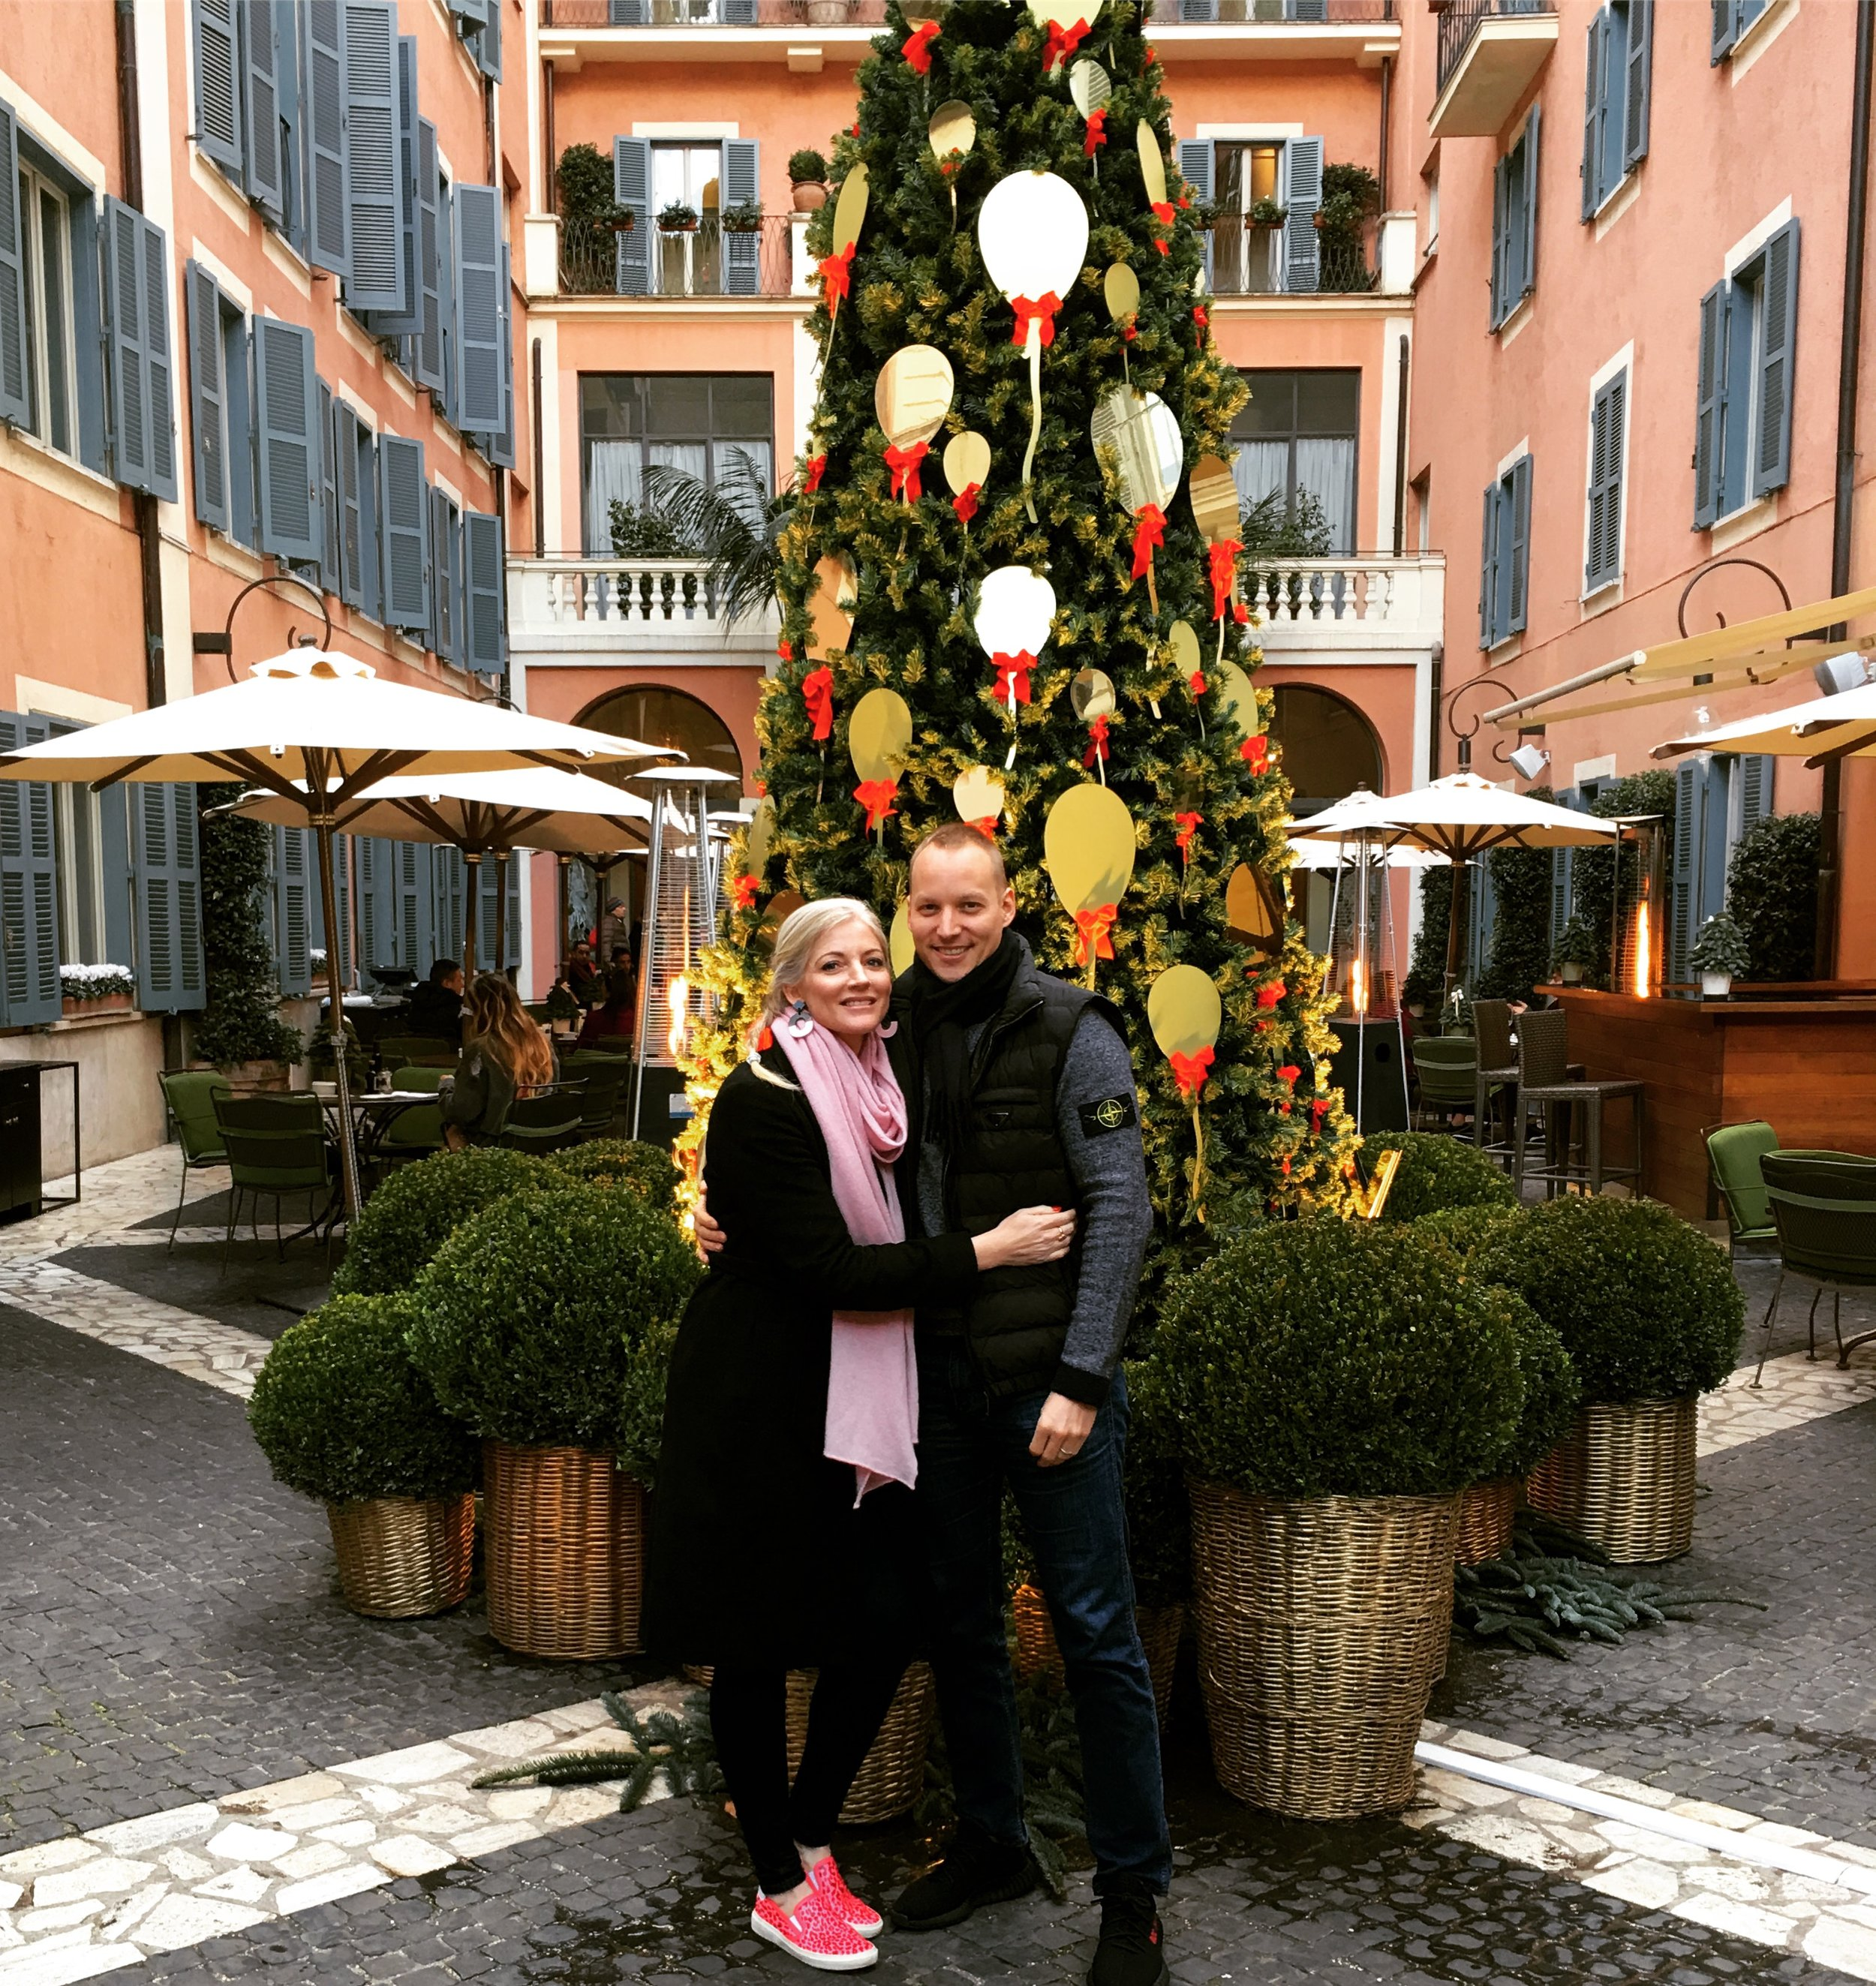 Merry Christmas from Dominic and me (here in the courtyard of Hotel De Russie)!